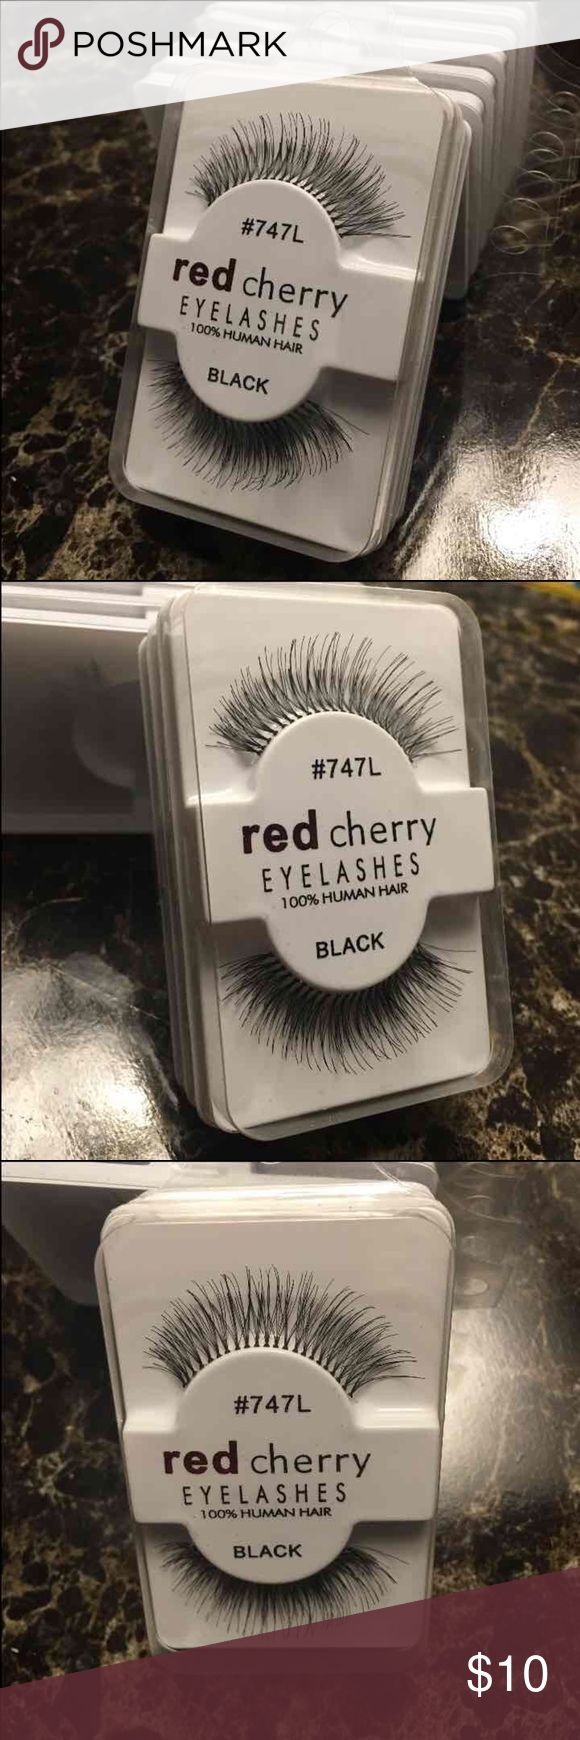 3 Pair Red Cherry False Lashes 100% Human Hair False Lashes 3 Pair $10 4 Pair $11 5 Pair $12 Free Shipping Will mix and match Kylie Jenner look Makeup False Eyelashes